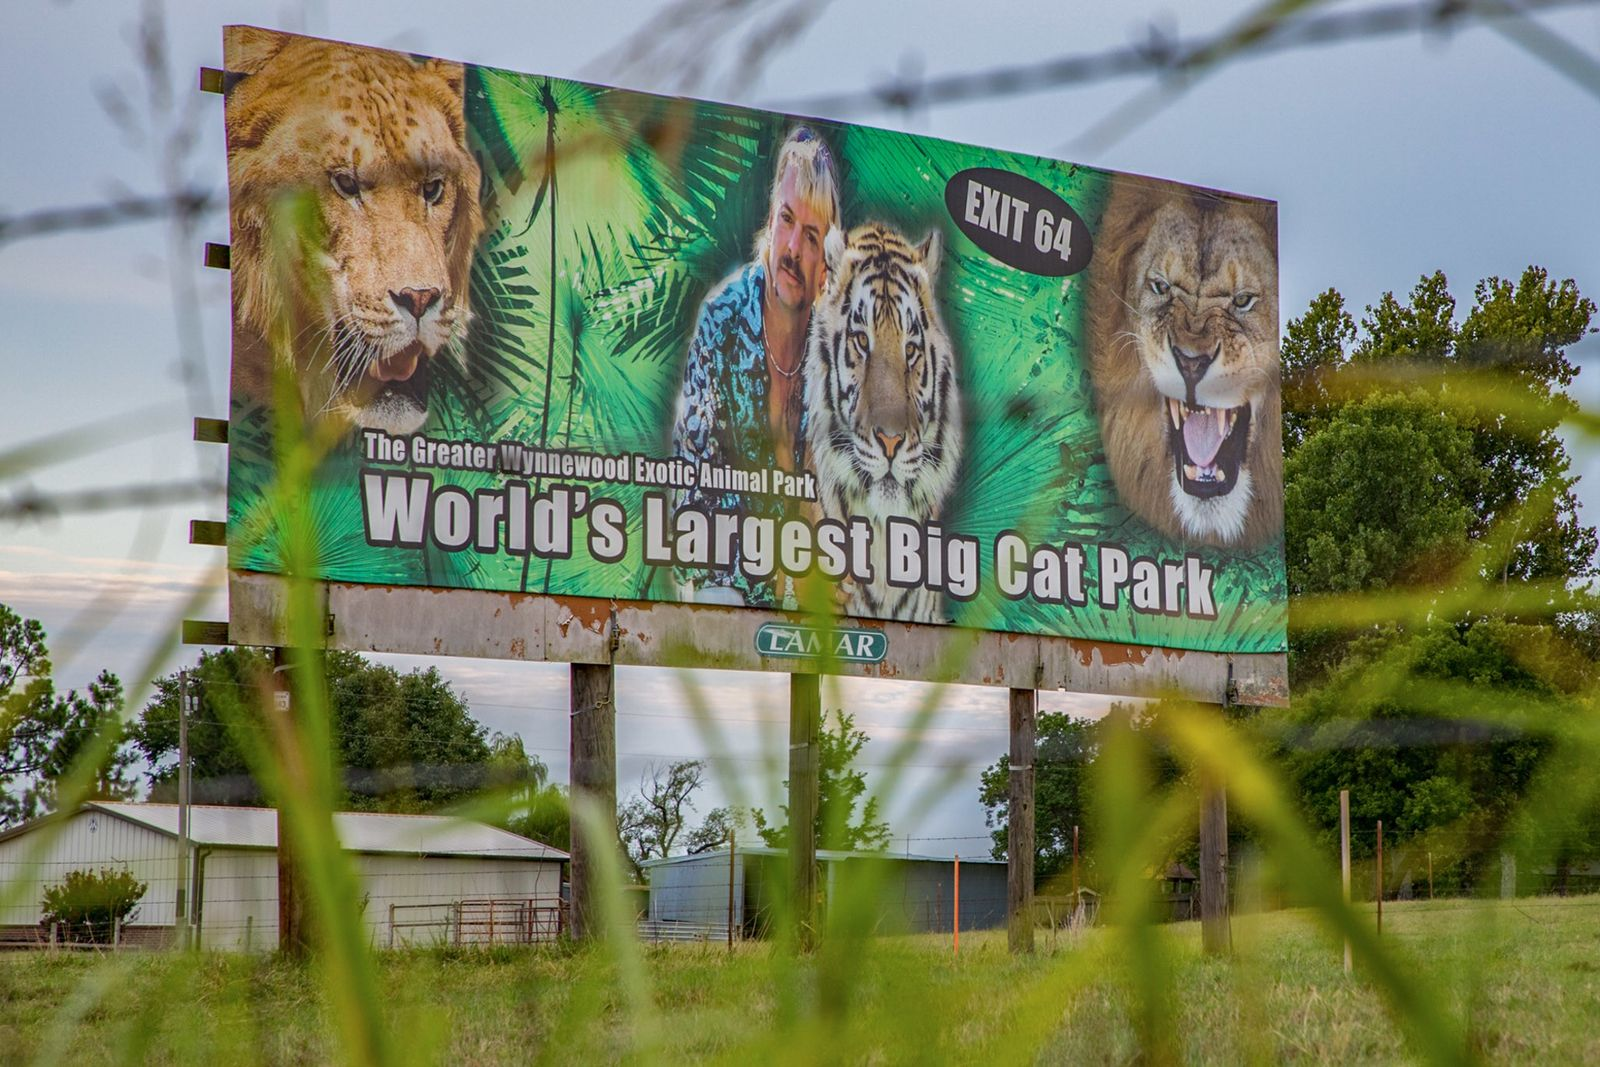 Court orders Joe Exotic's former zoo be relinquished to Carole Baskin